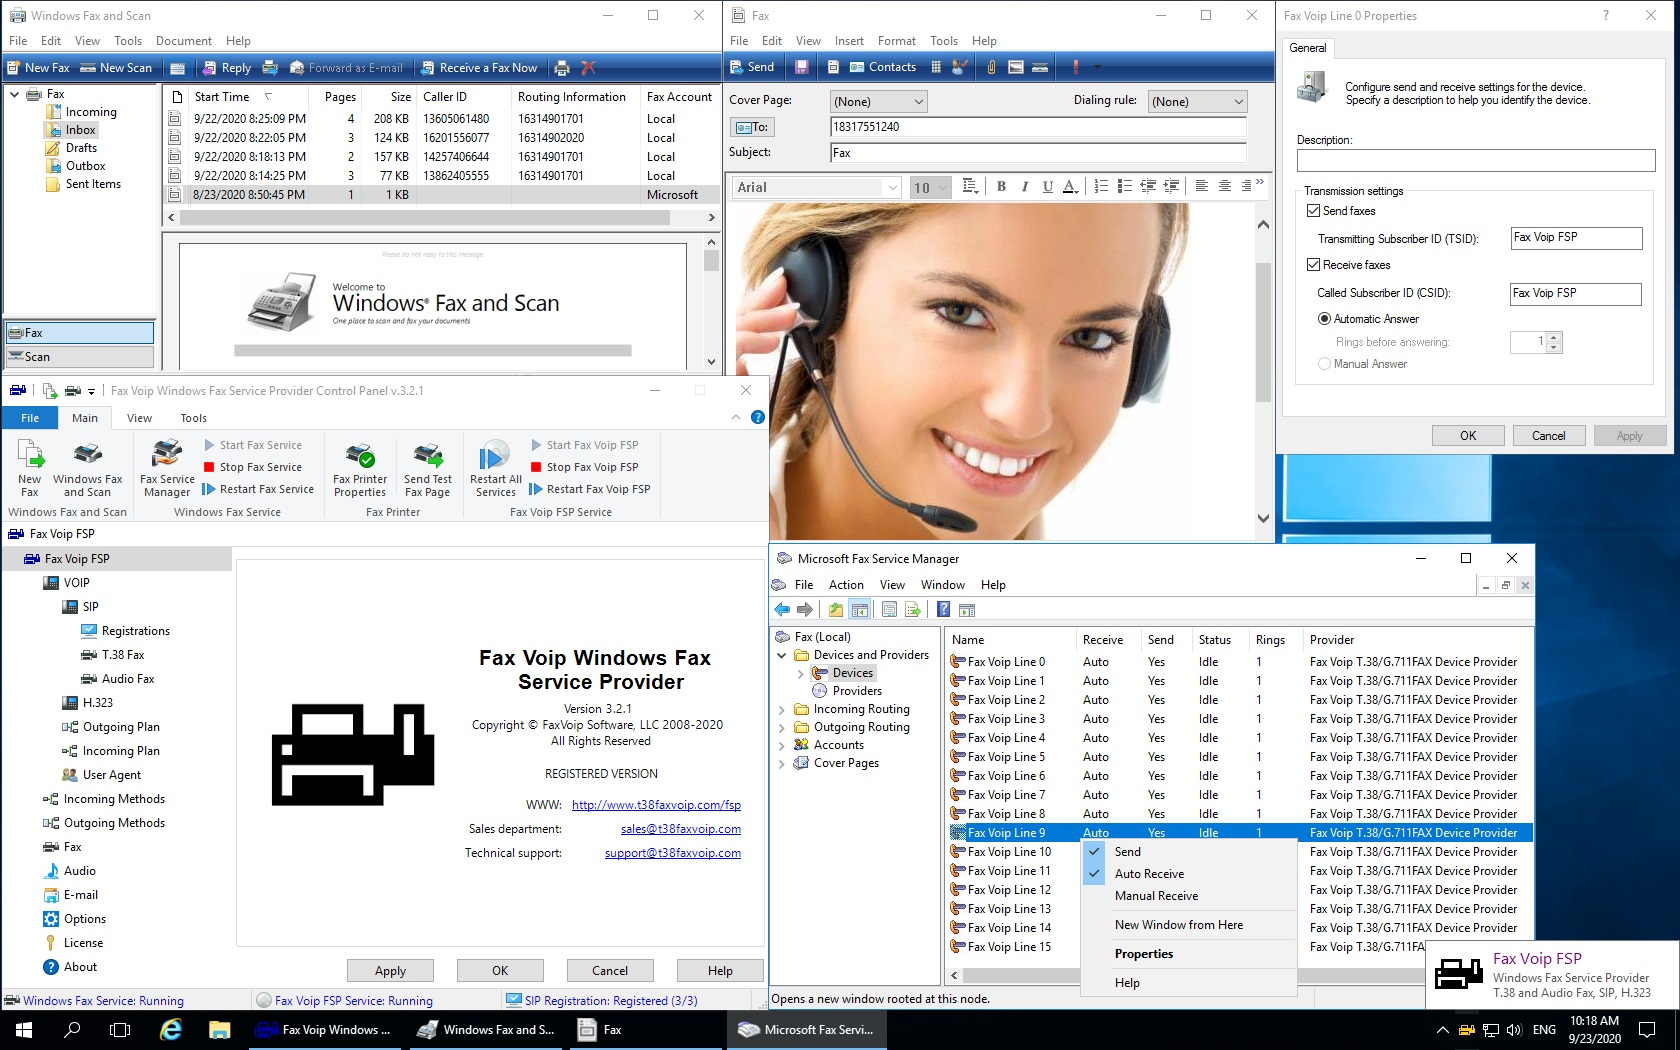 Fax Voip Windows Fax Service Provider 2.3.1 Screen shot